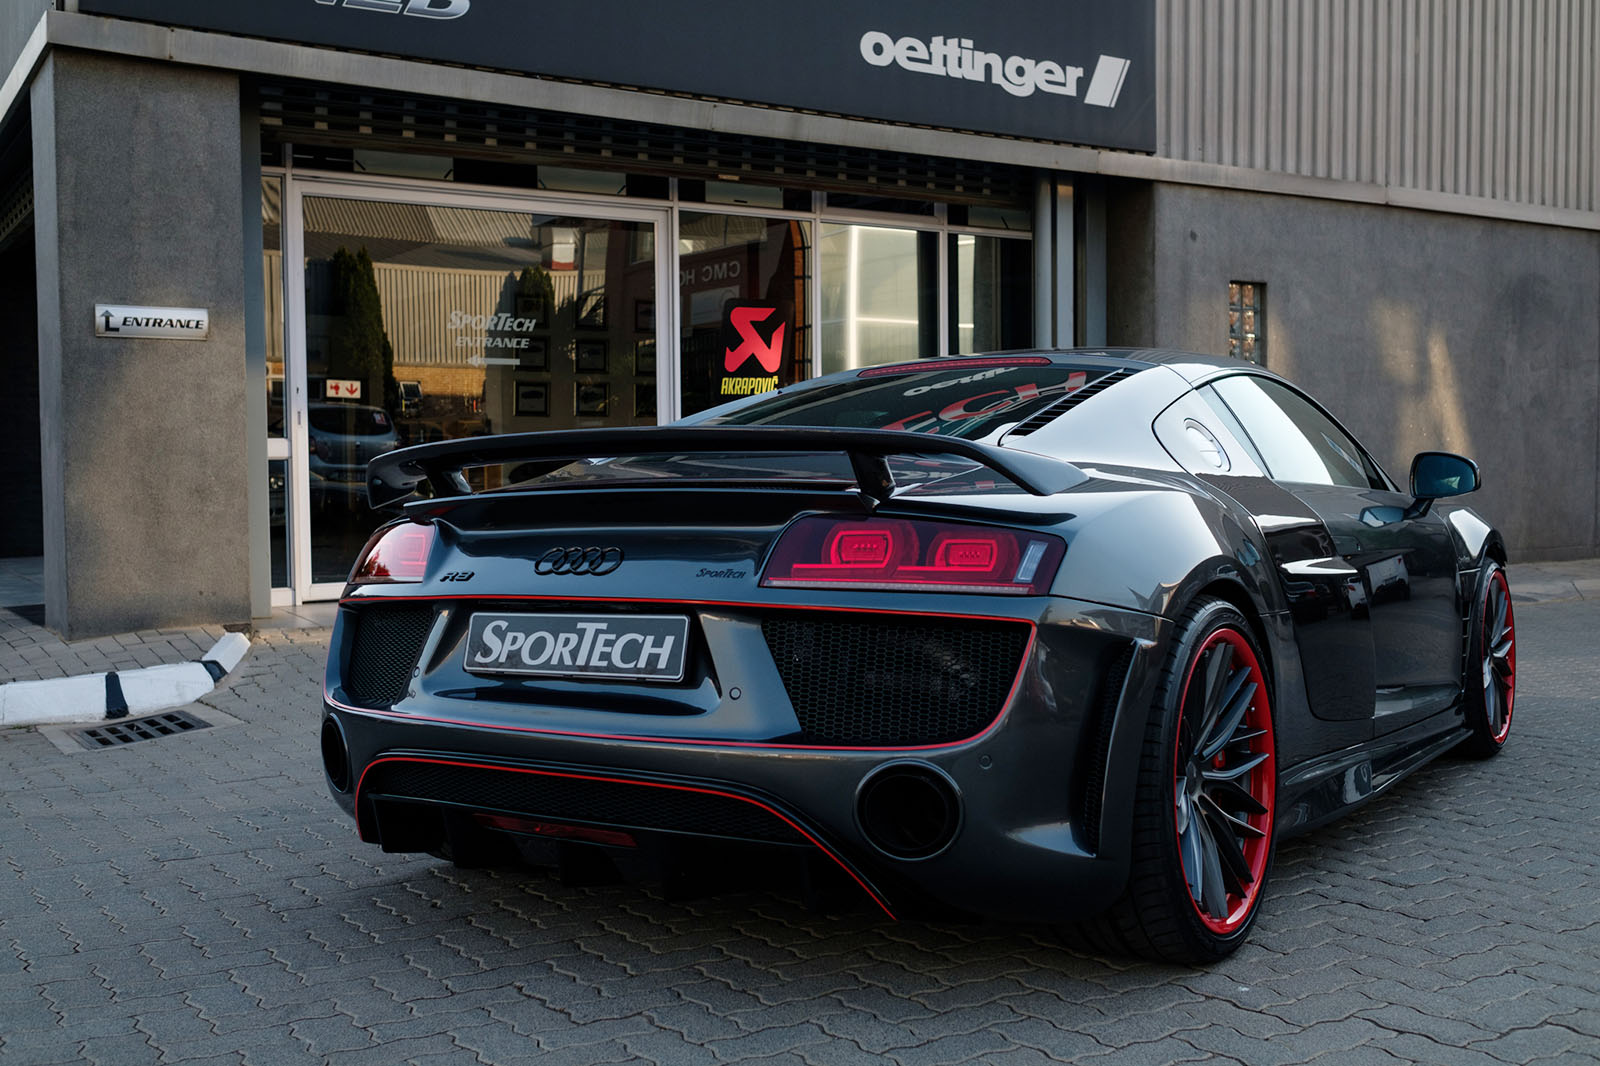 SporTech Cars – The leader in cosmetic and performance upgrades